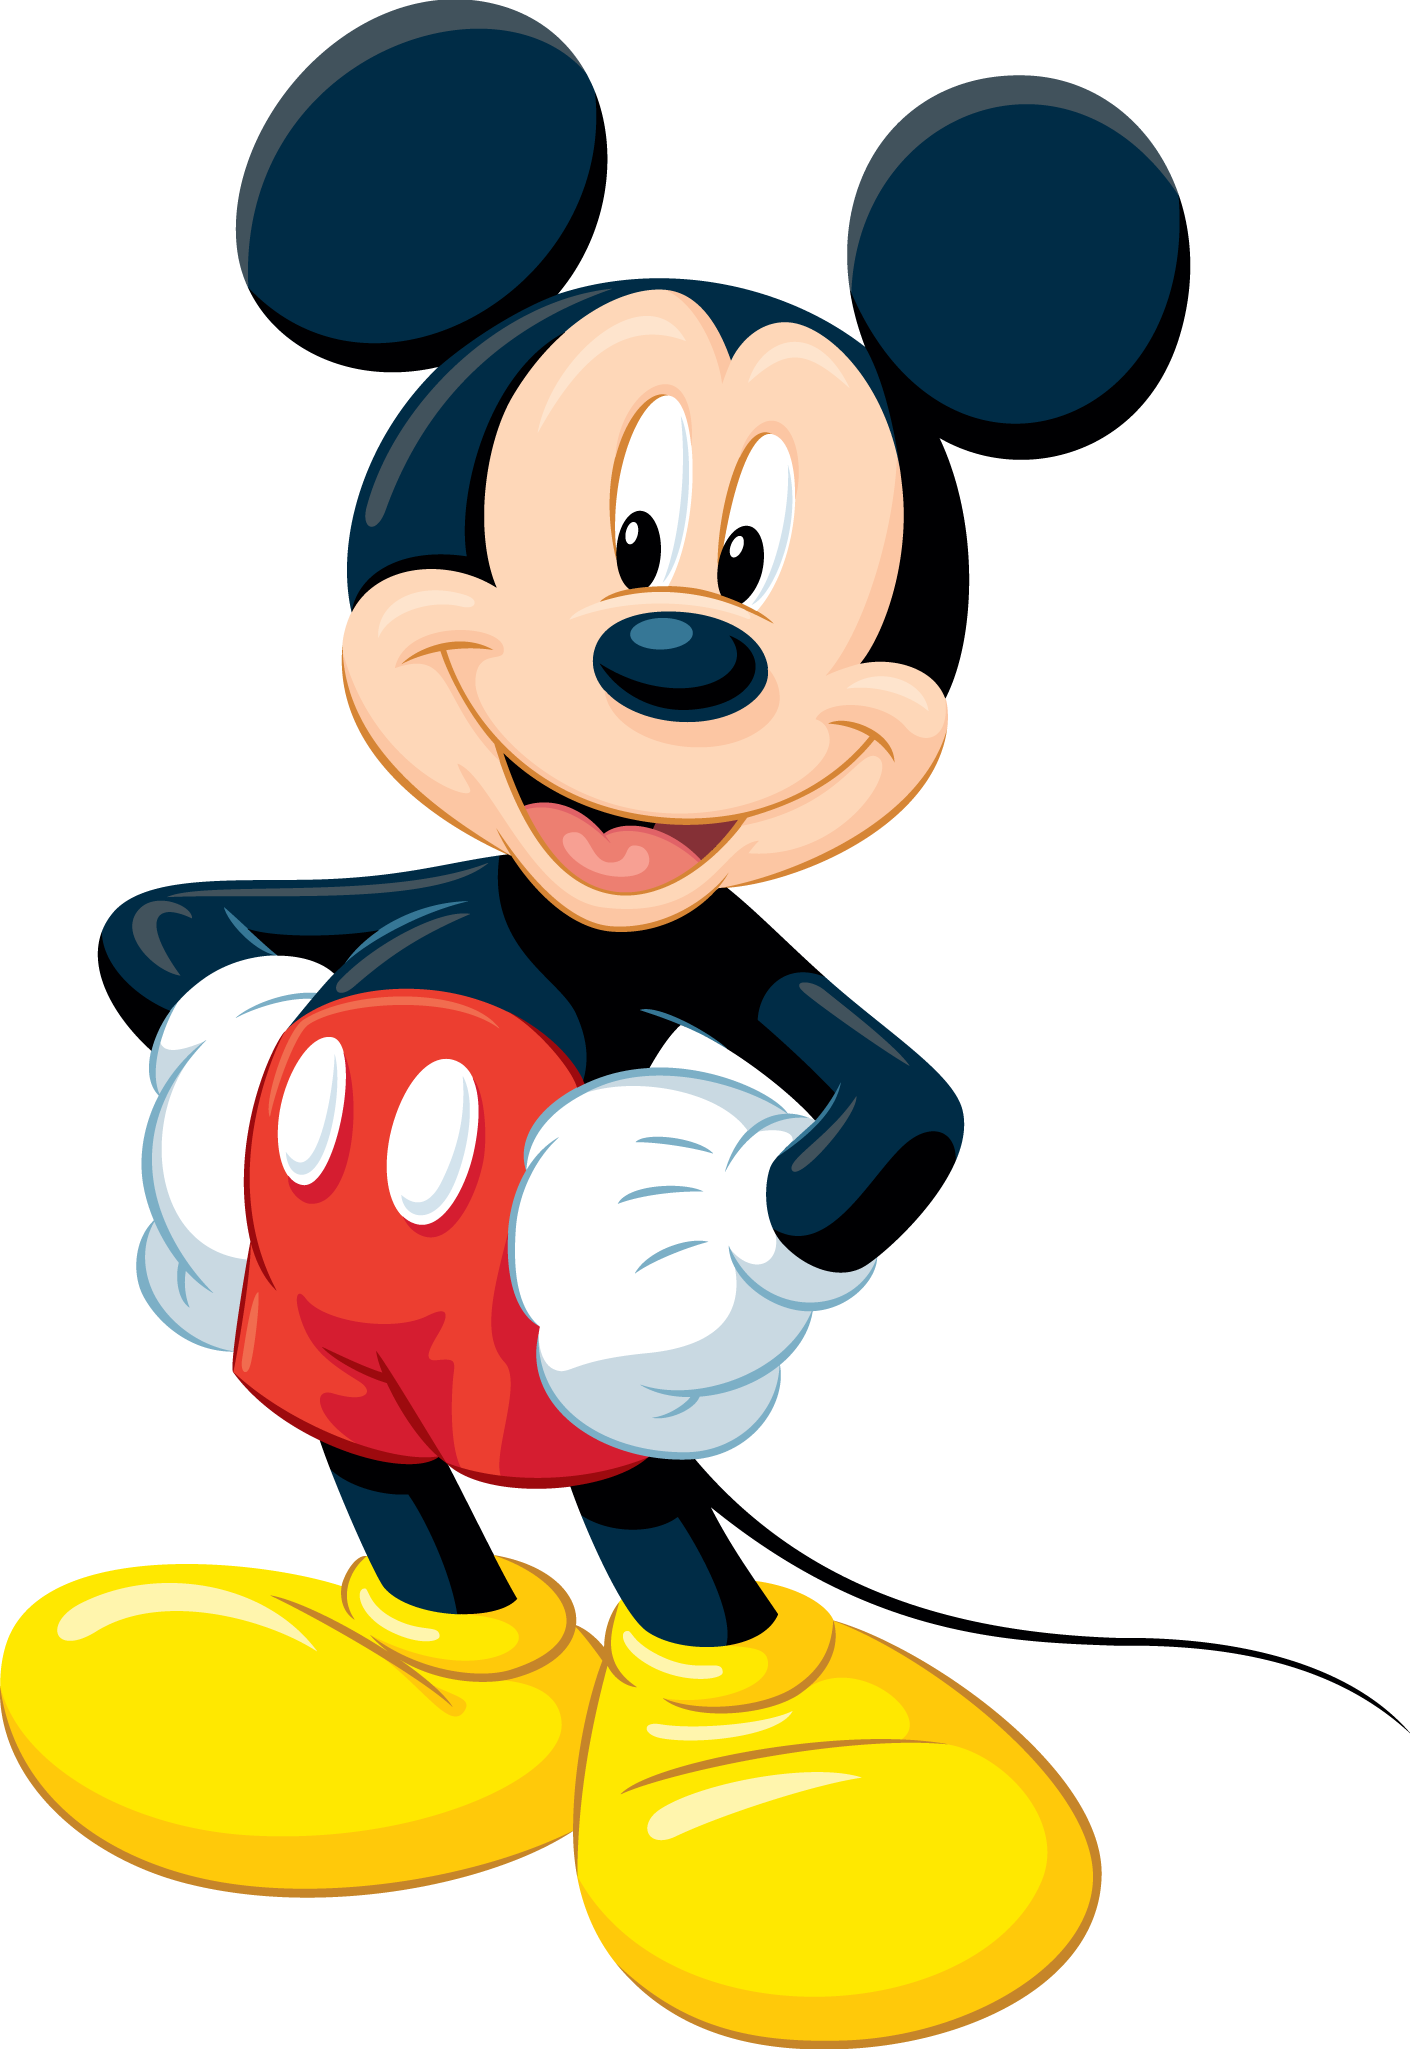 clip art library Mickey mouse sammies nd. Clubhouse clipart jpeg.